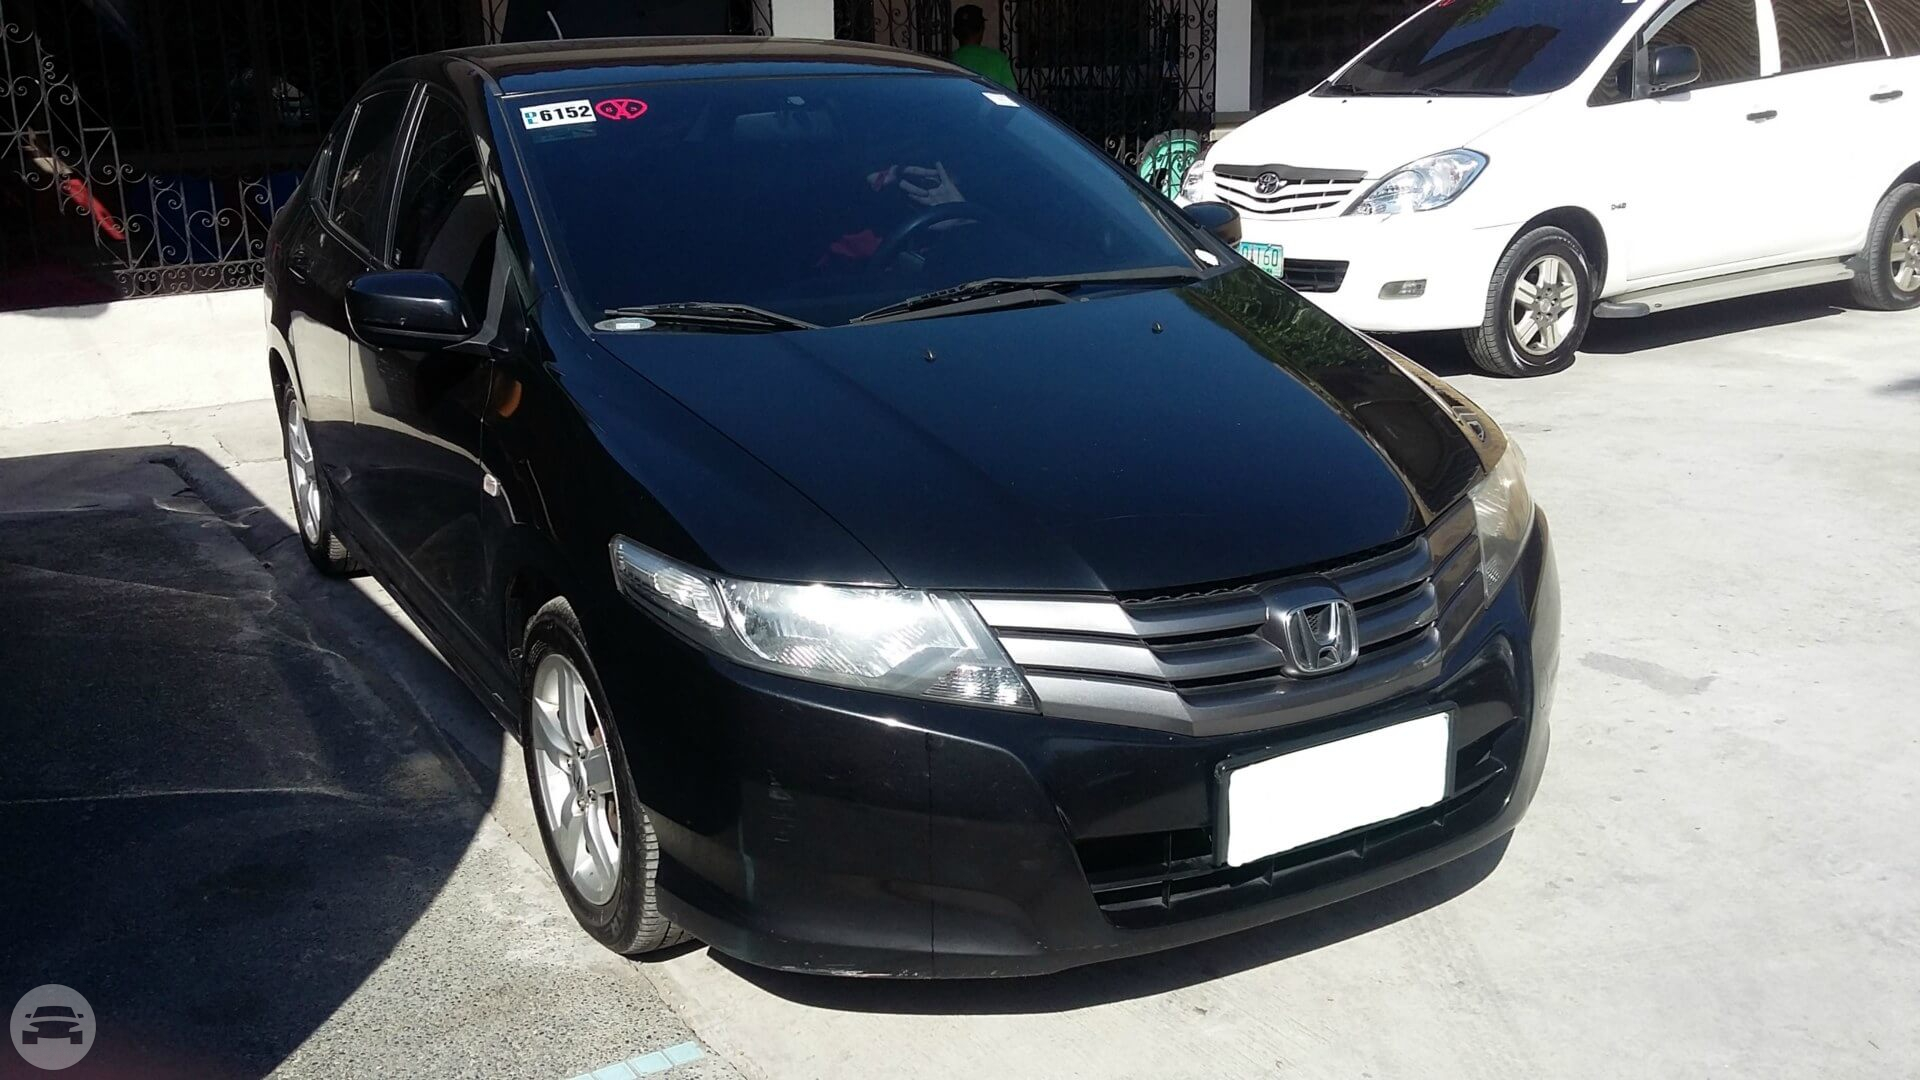 Honda Civic Sedan / Parañaque, Metro Manila   / Hourly ₱0.00